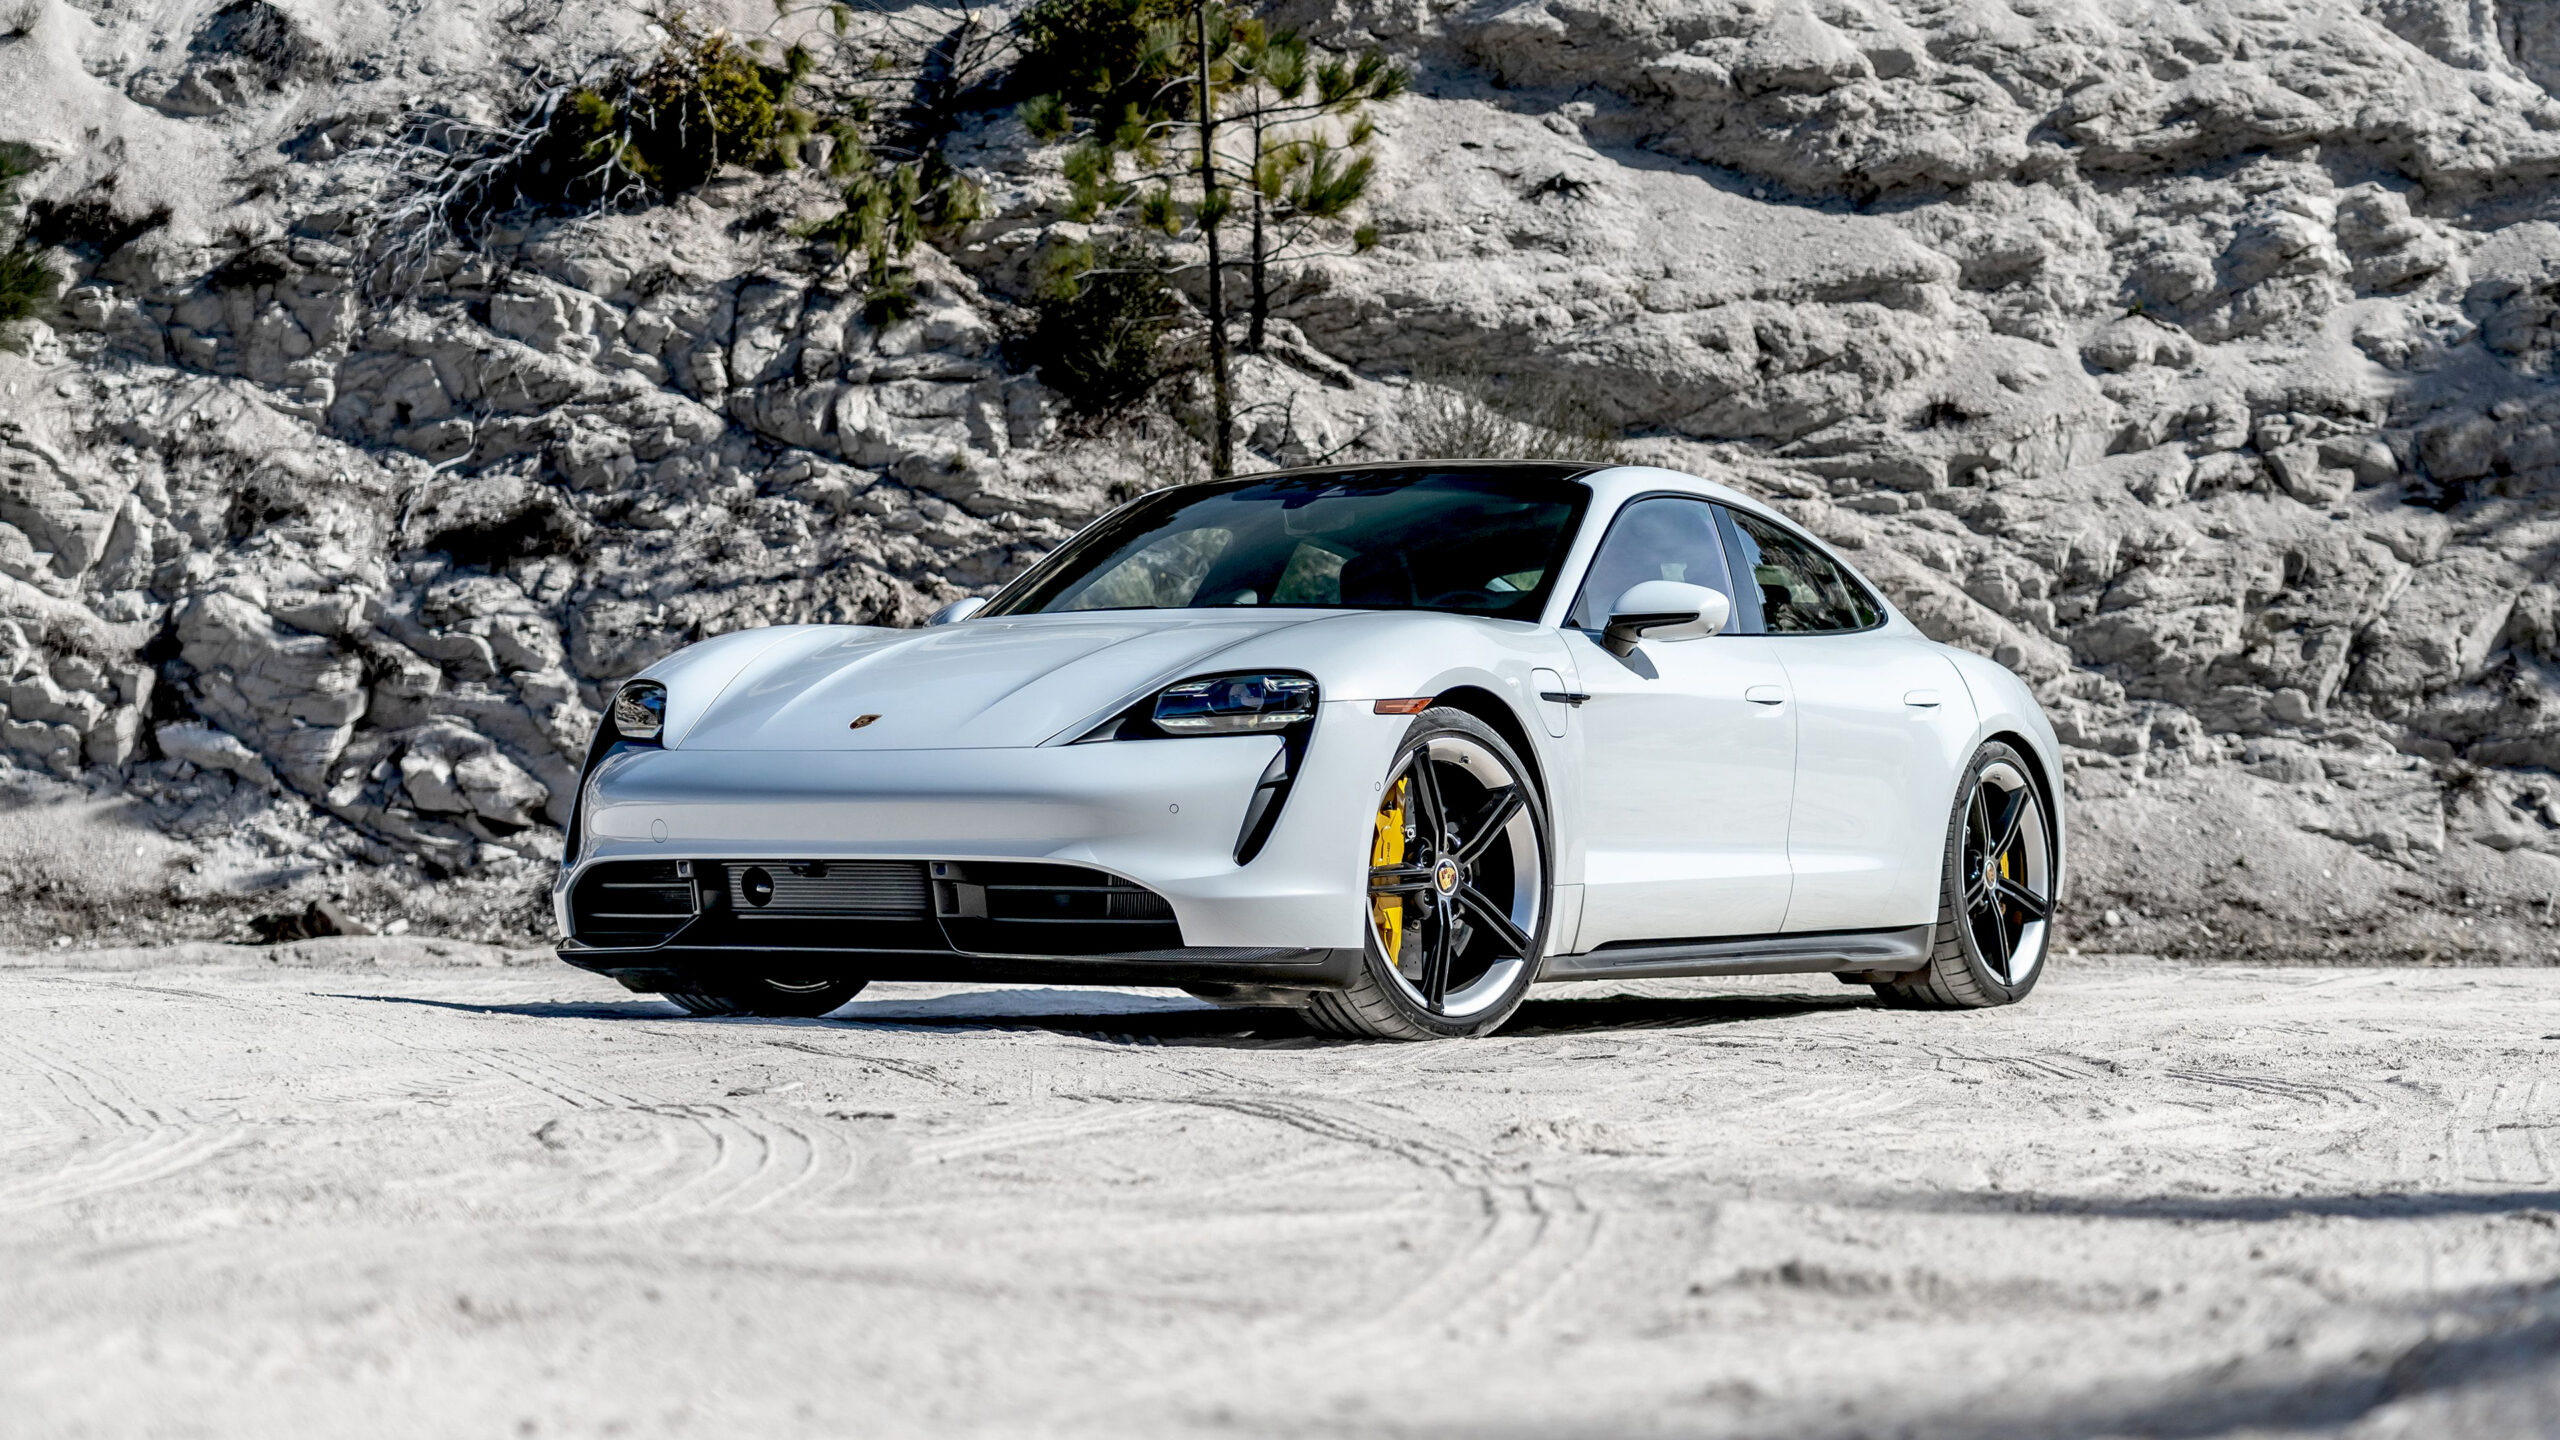 2020 Porsche Taycan Turbo S Wallpapers